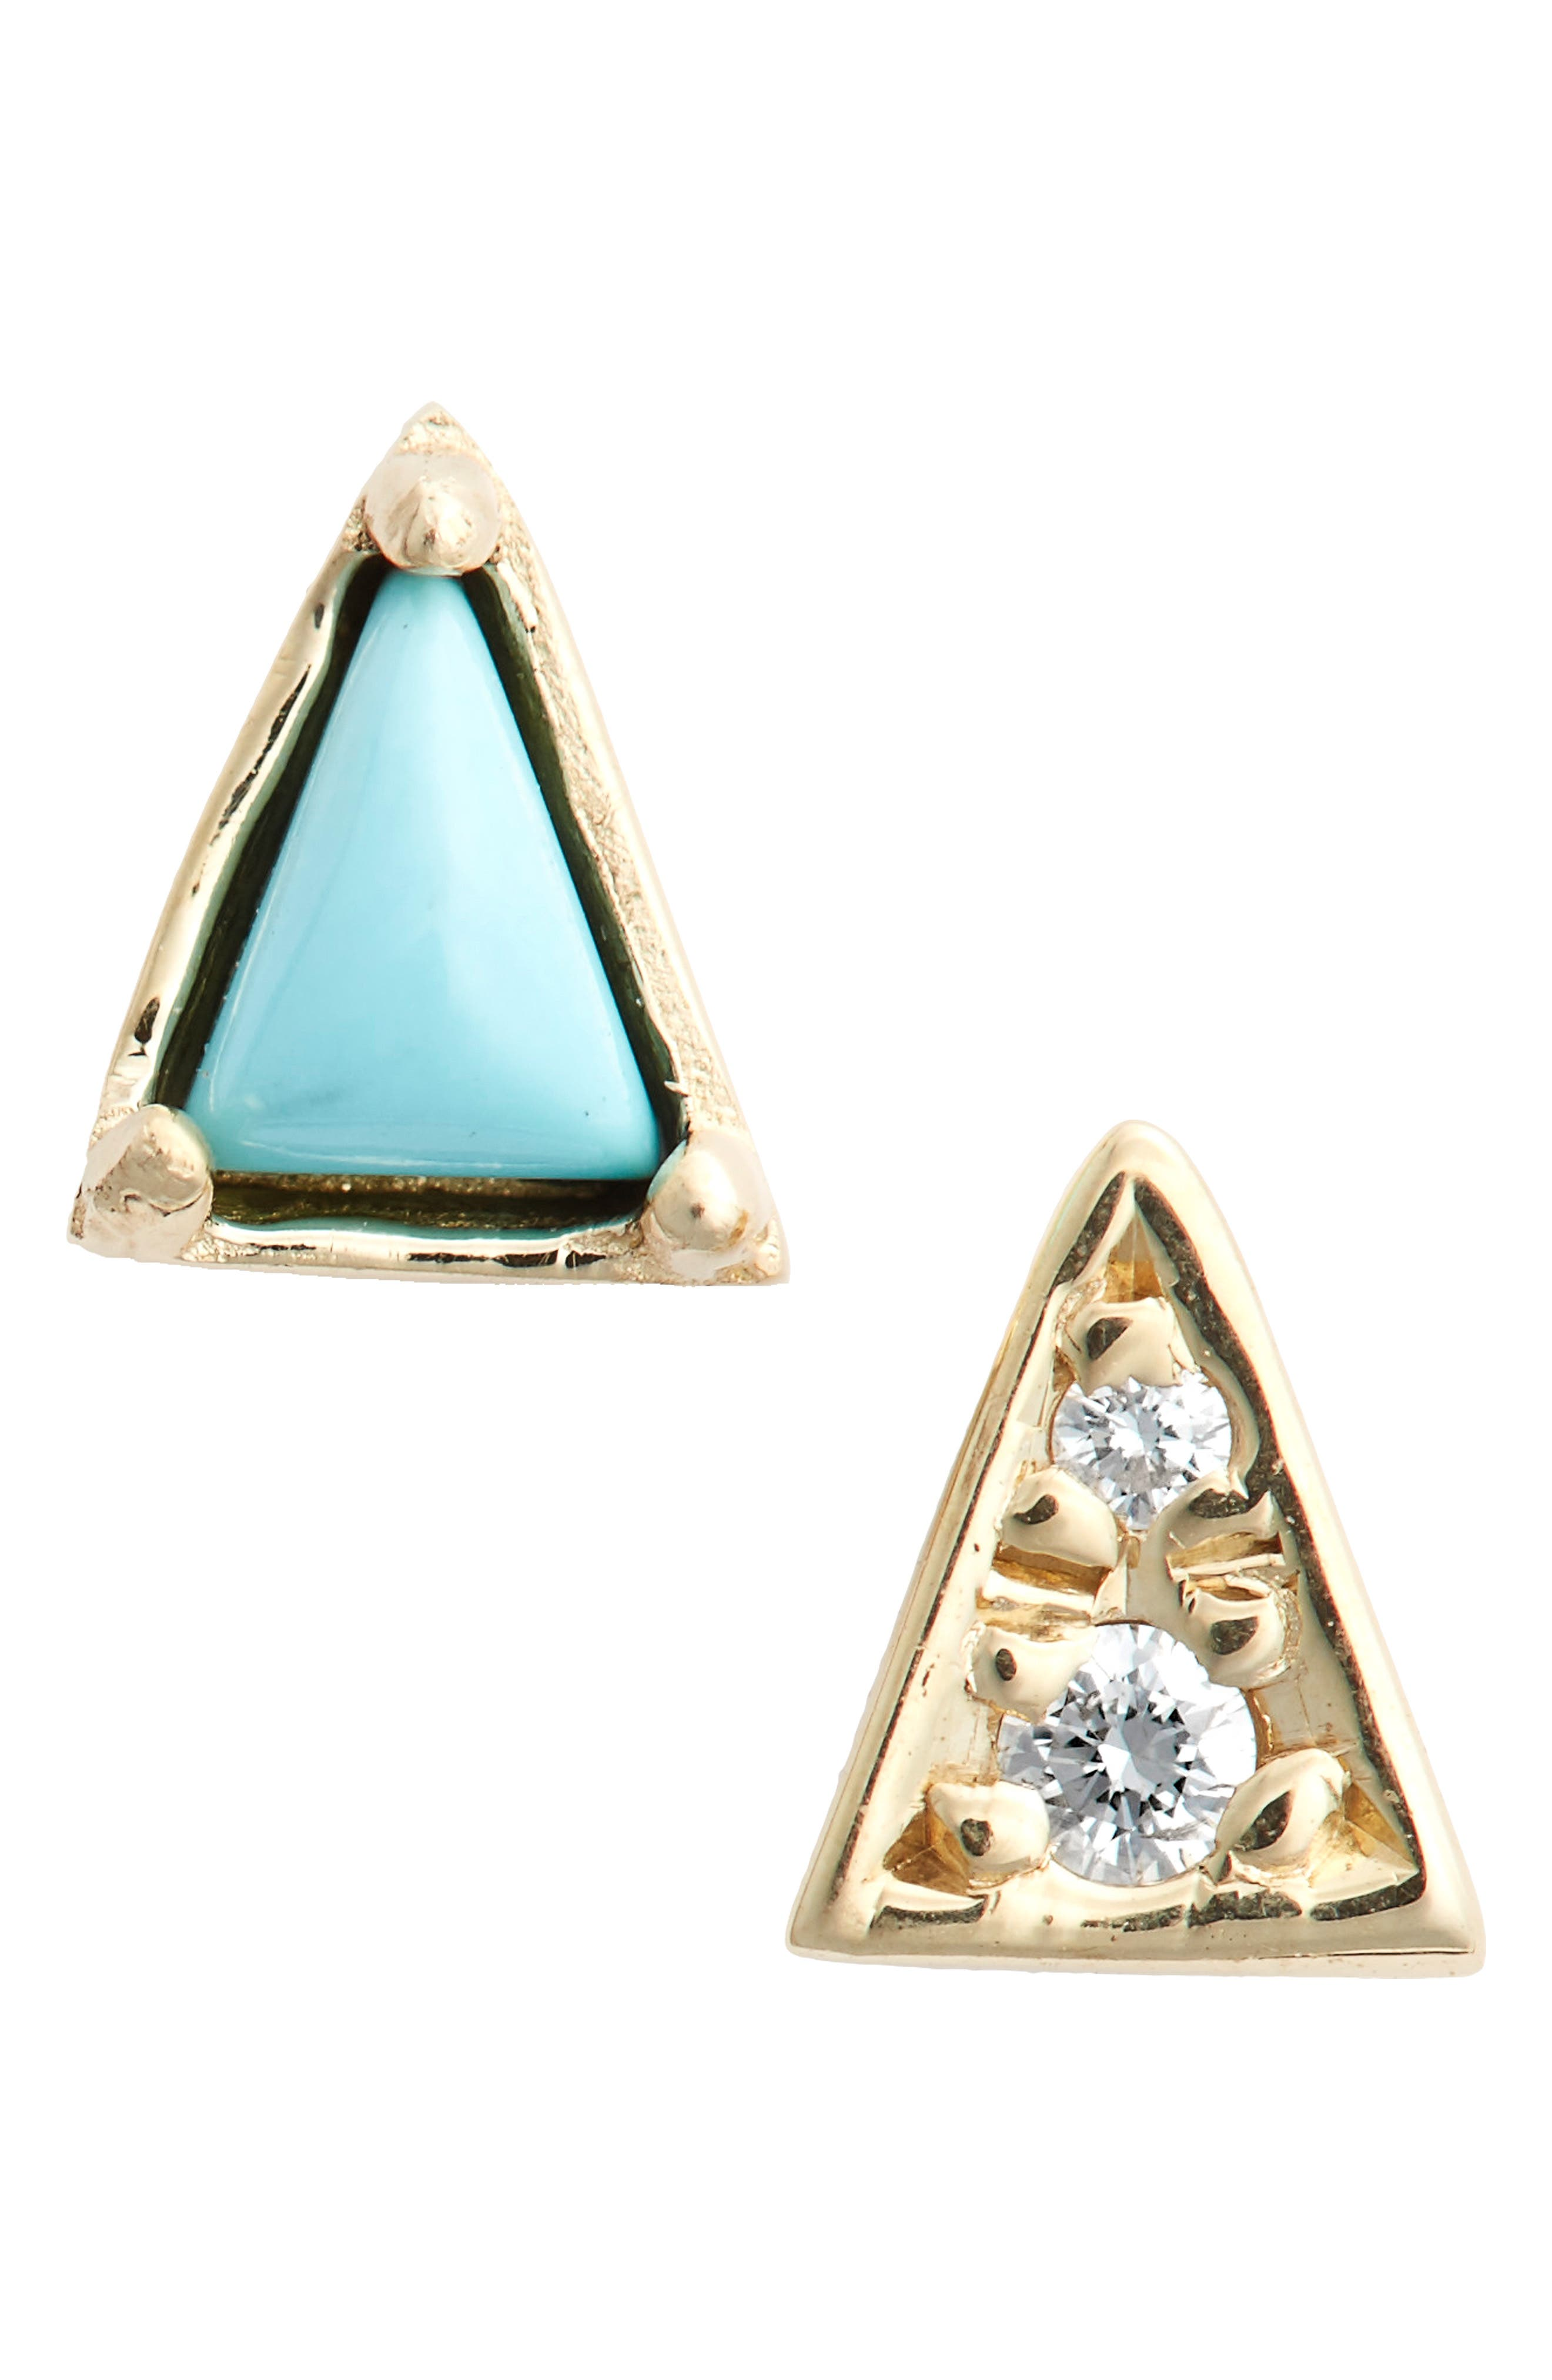 Mismatch Triangle Turquoise Stud Earrings,                             Alternate thumbnail 4, color,                             710